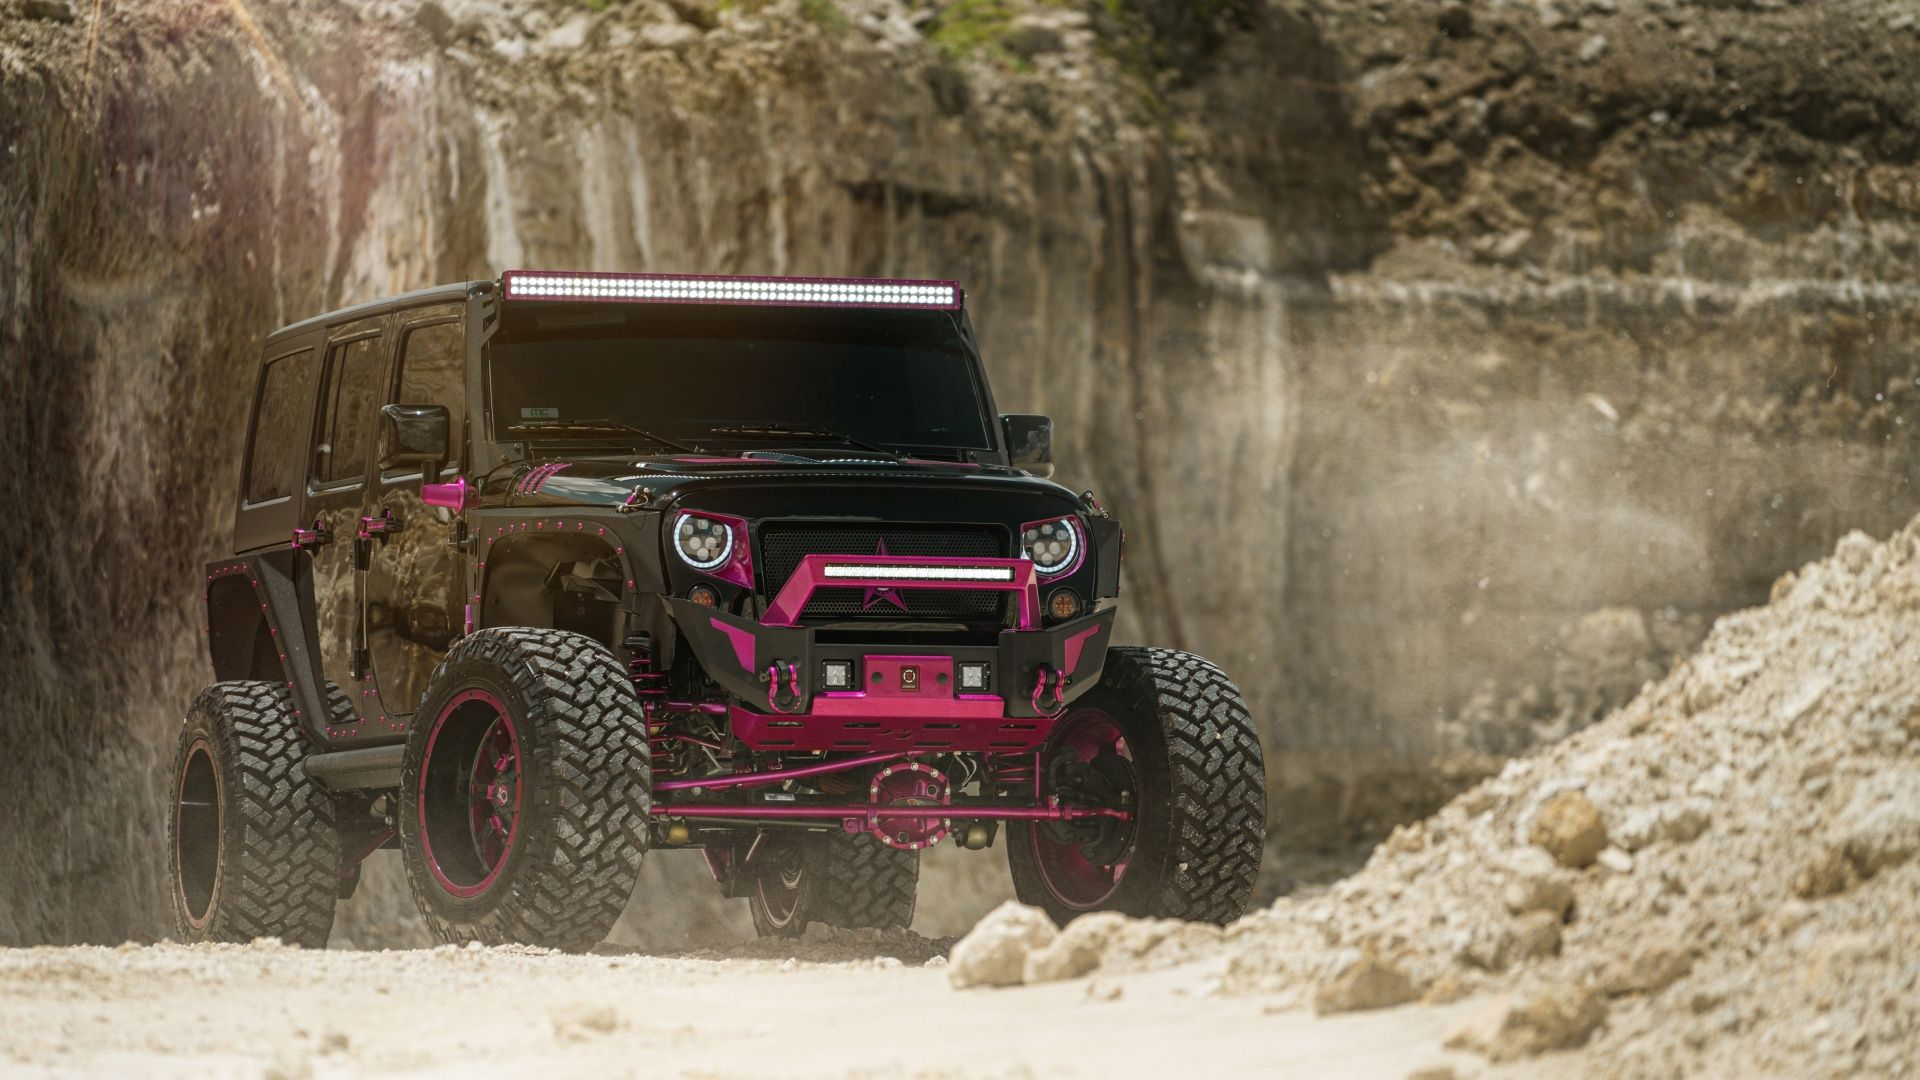 Pin By Buu Dang On Iphone 6s Plus Wallpapers Must To Have Jeep